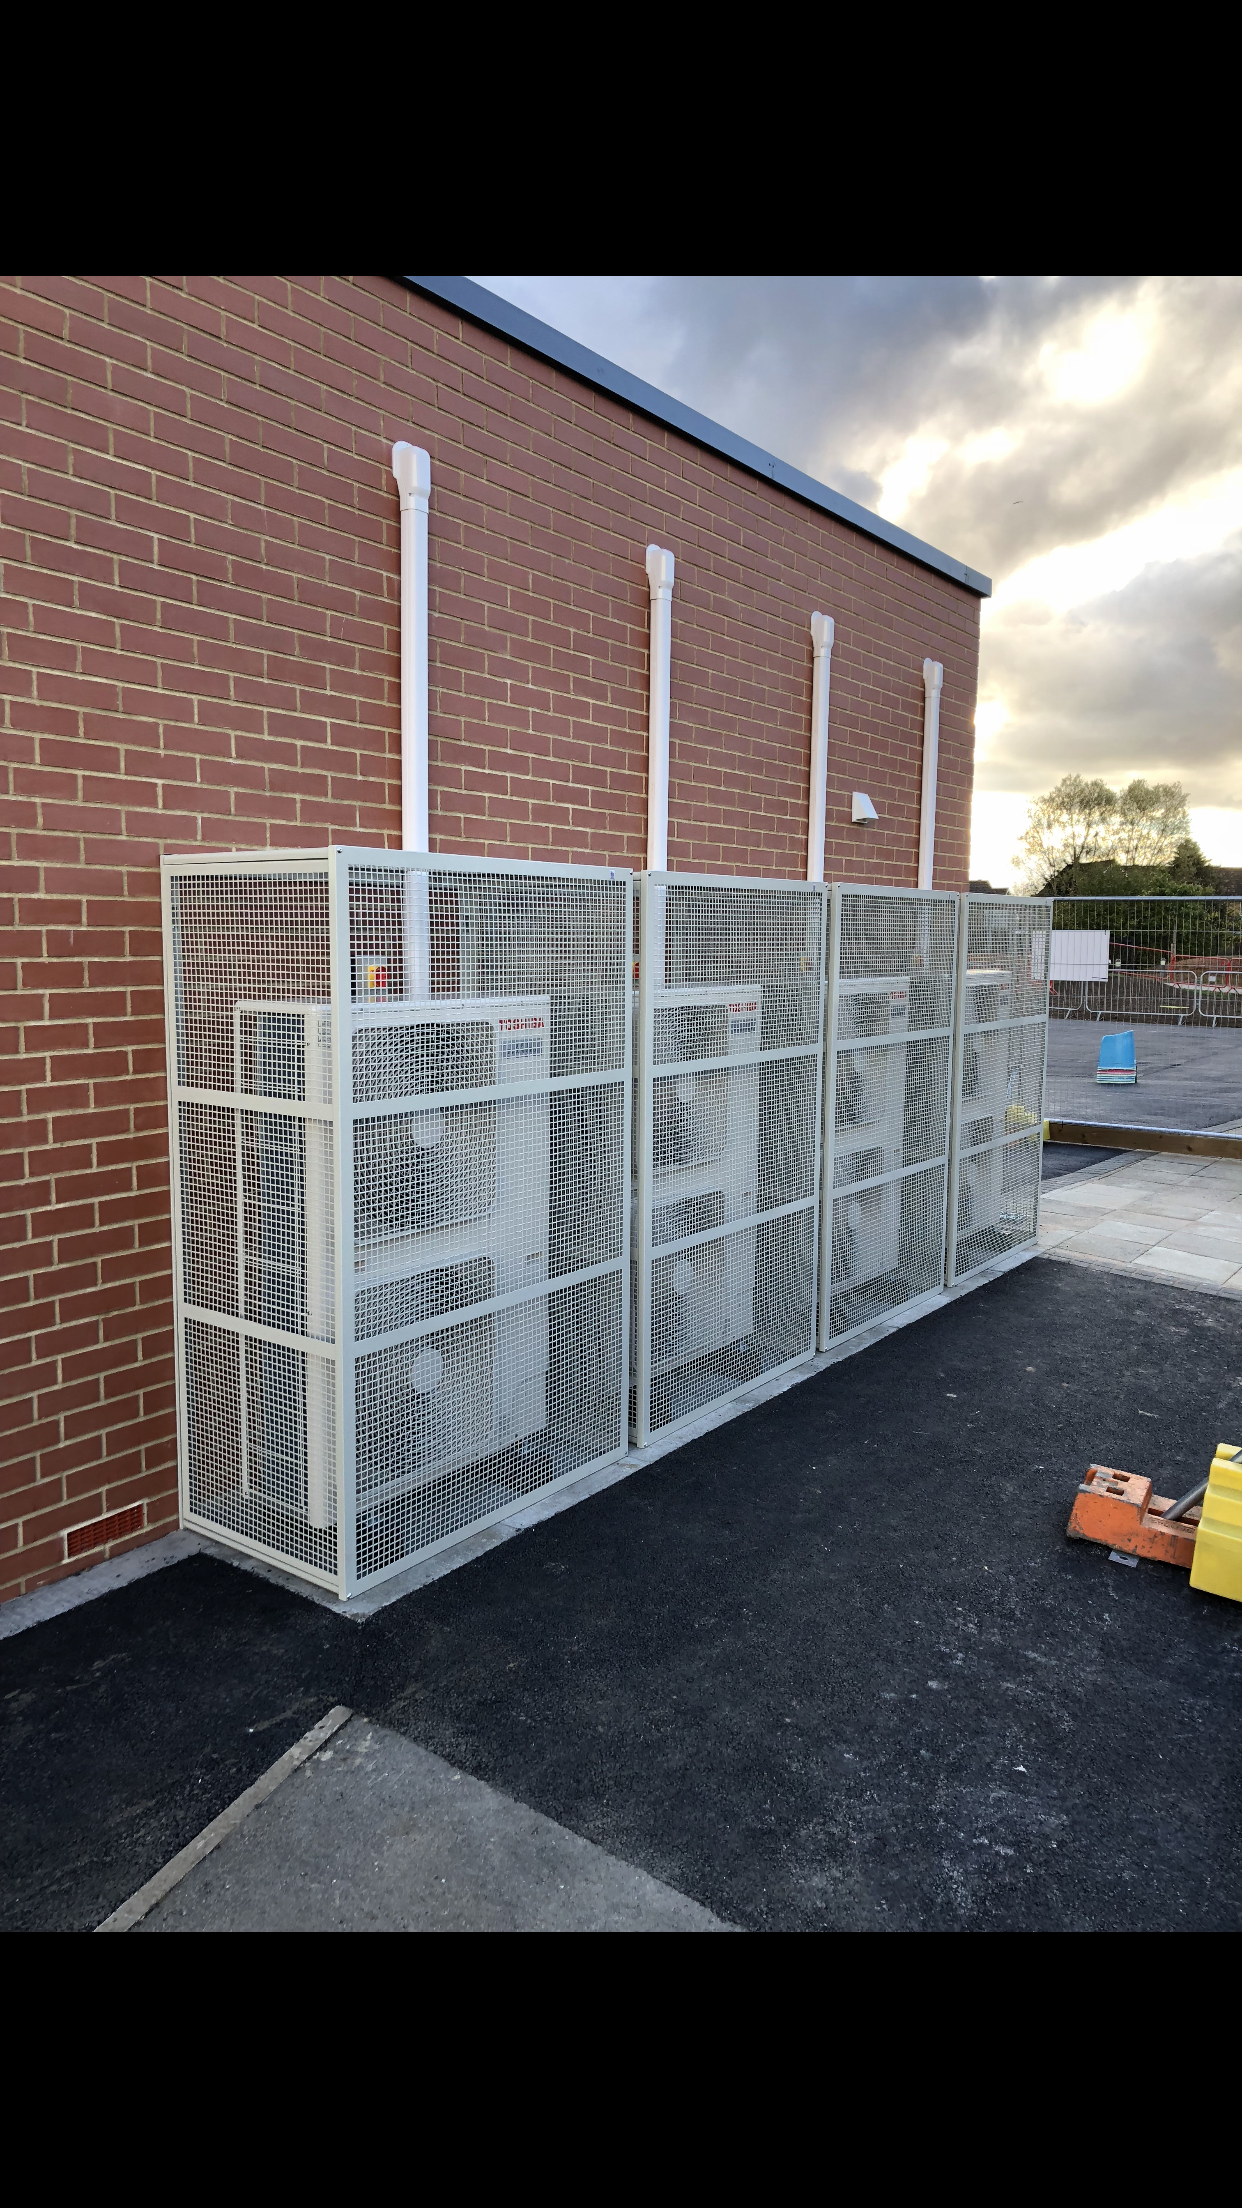 A Row Of Toshiba Air Conditioning Condensing Units Supplying